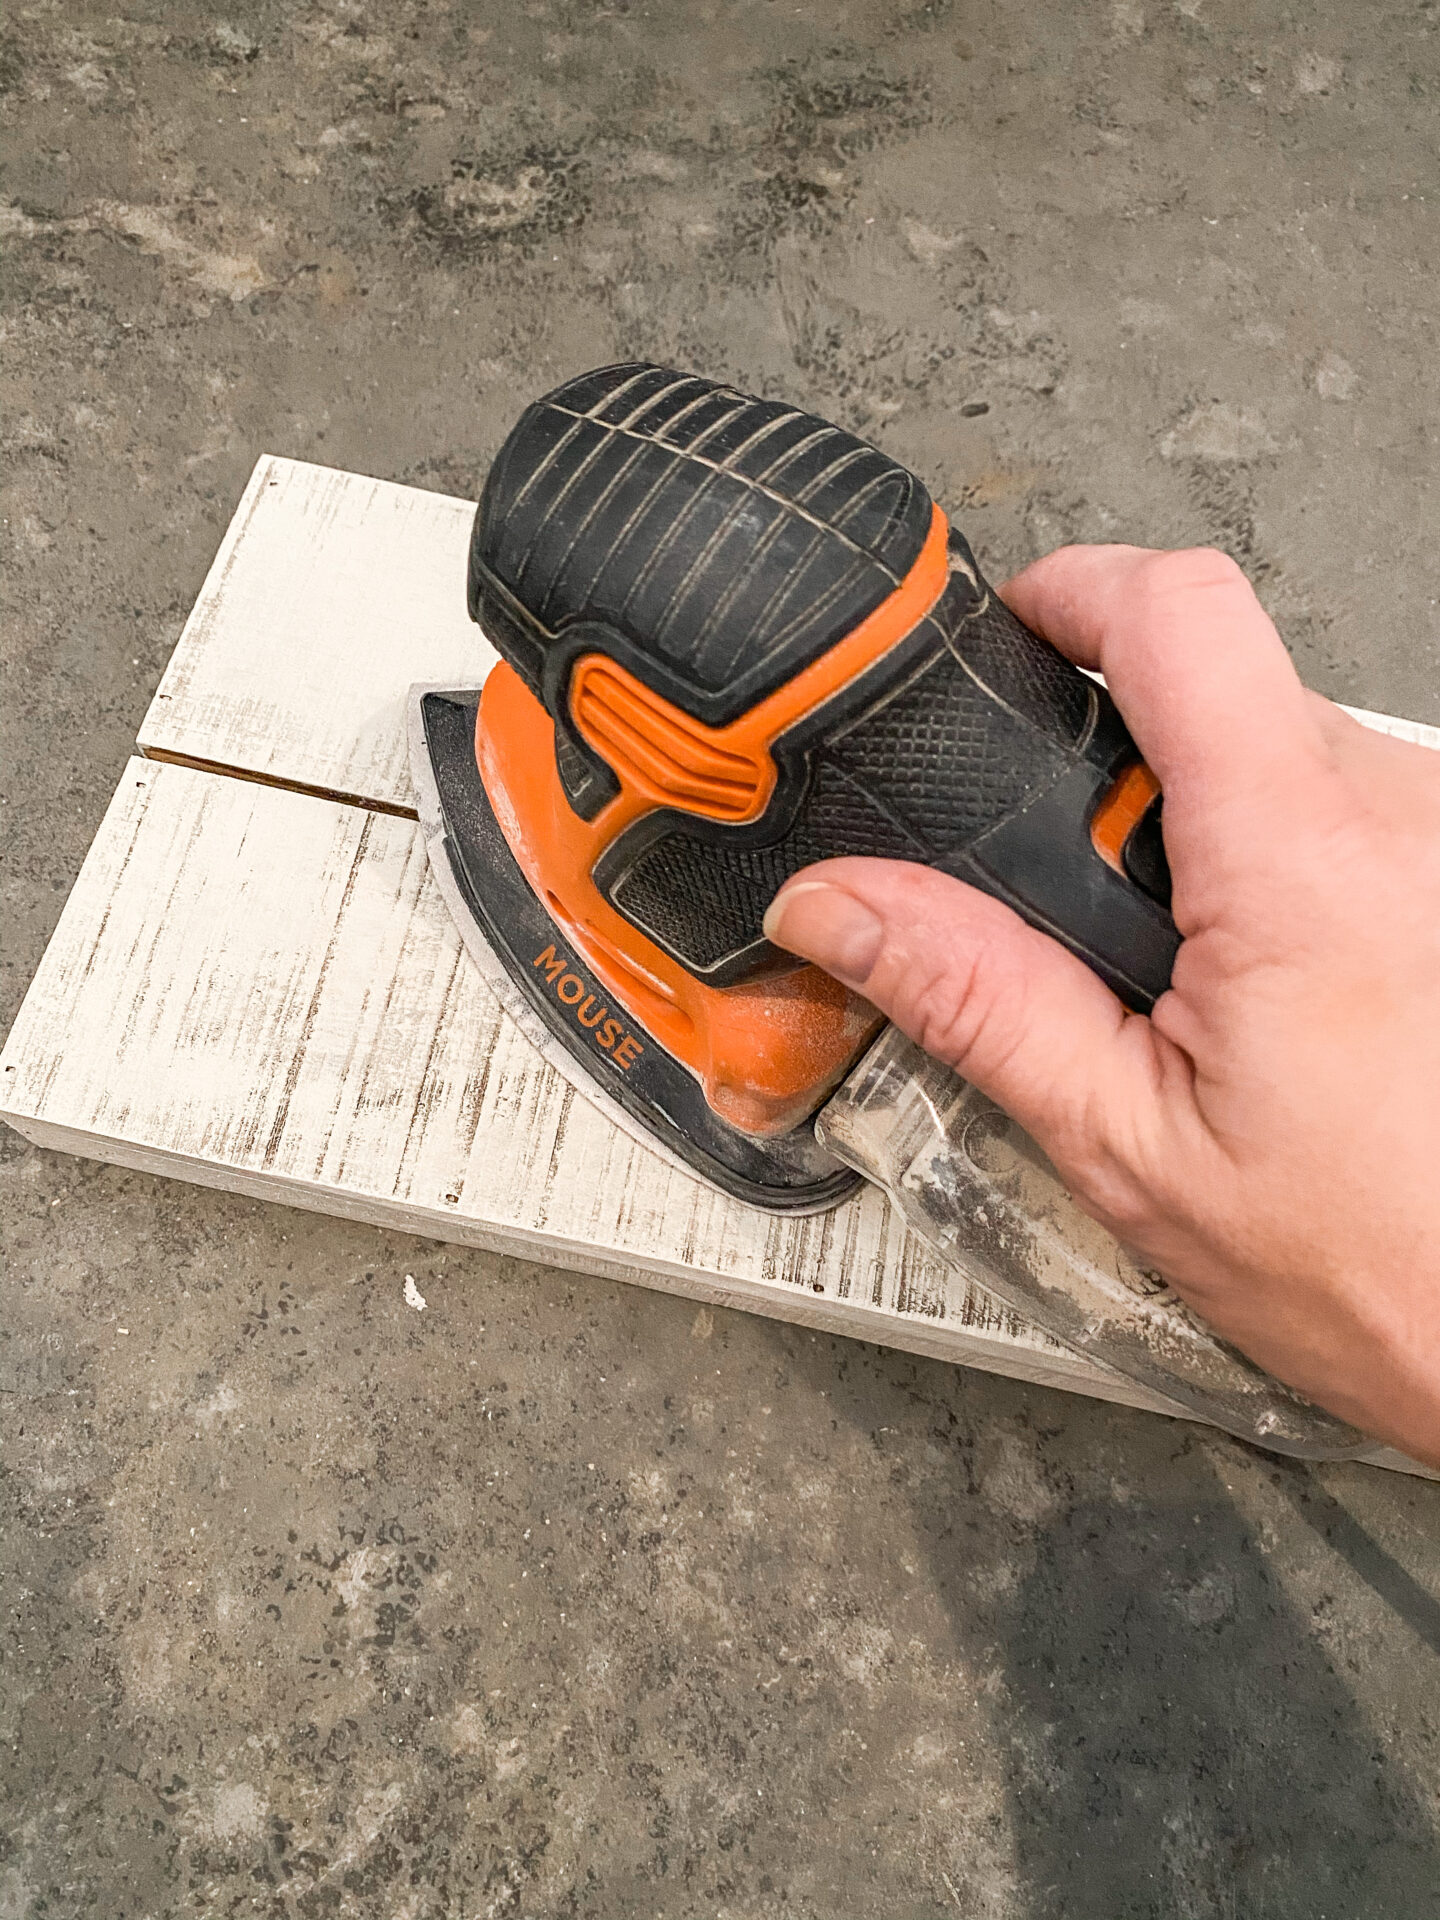 how to use a mouse sander.